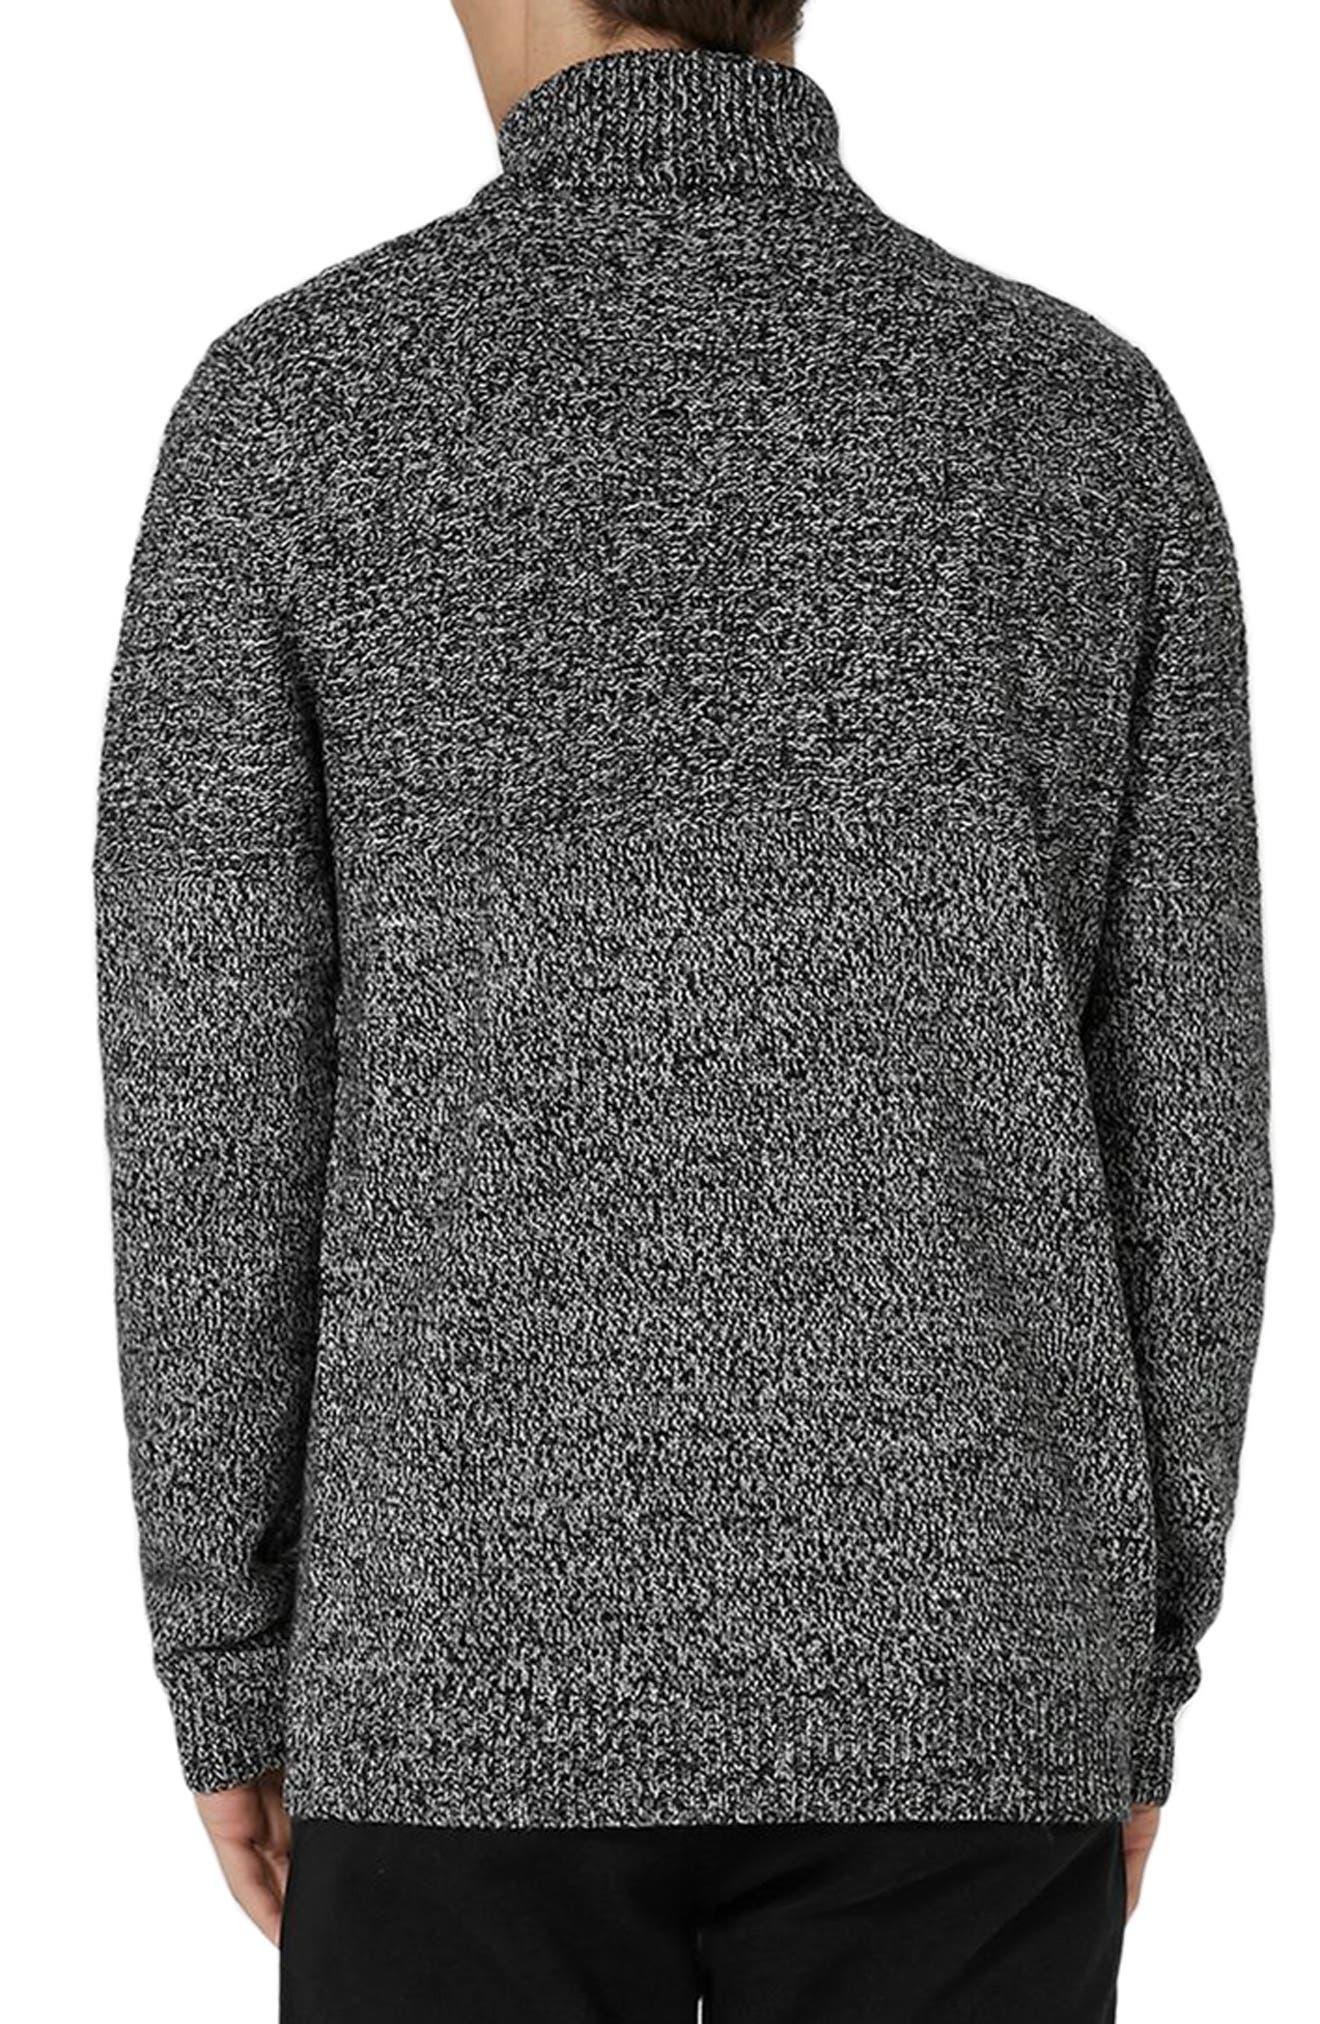 Twist Roll Neck Sweater,                             Alternate thumbnail 2, color,                             020